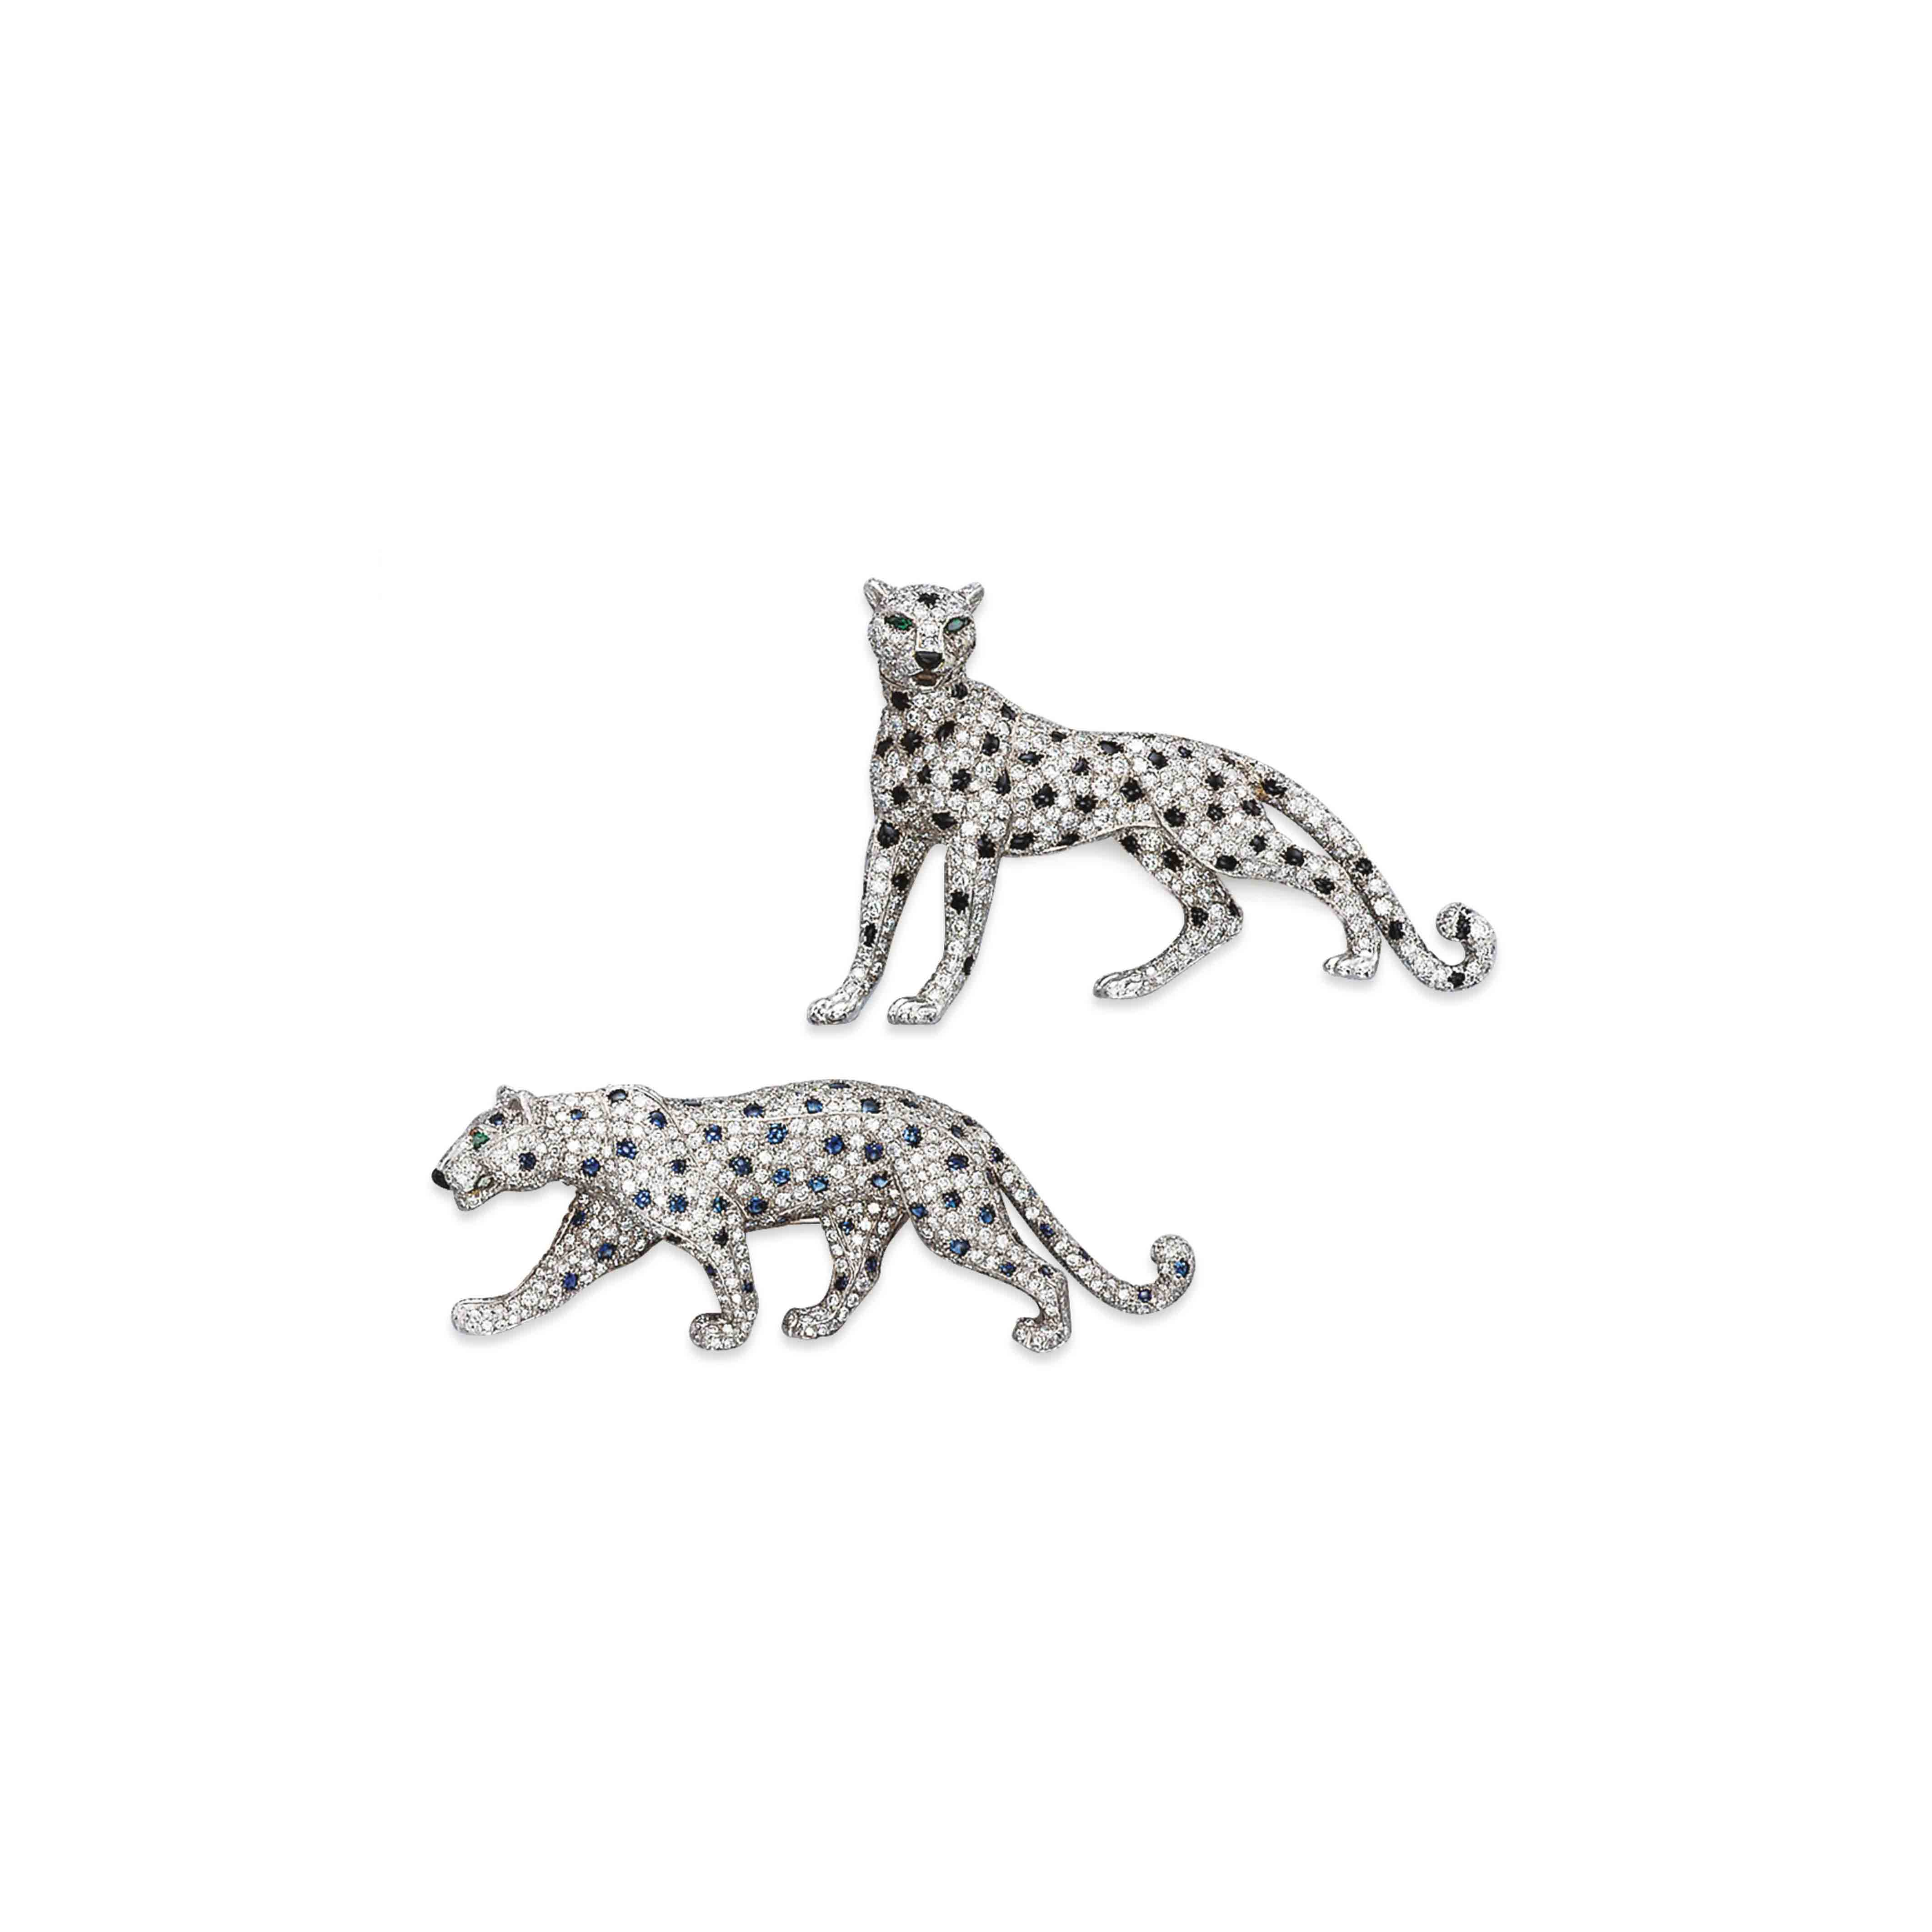 TWO GEM-SET AND DIAMOND PANTHER BROOCHES, BY CARTIER